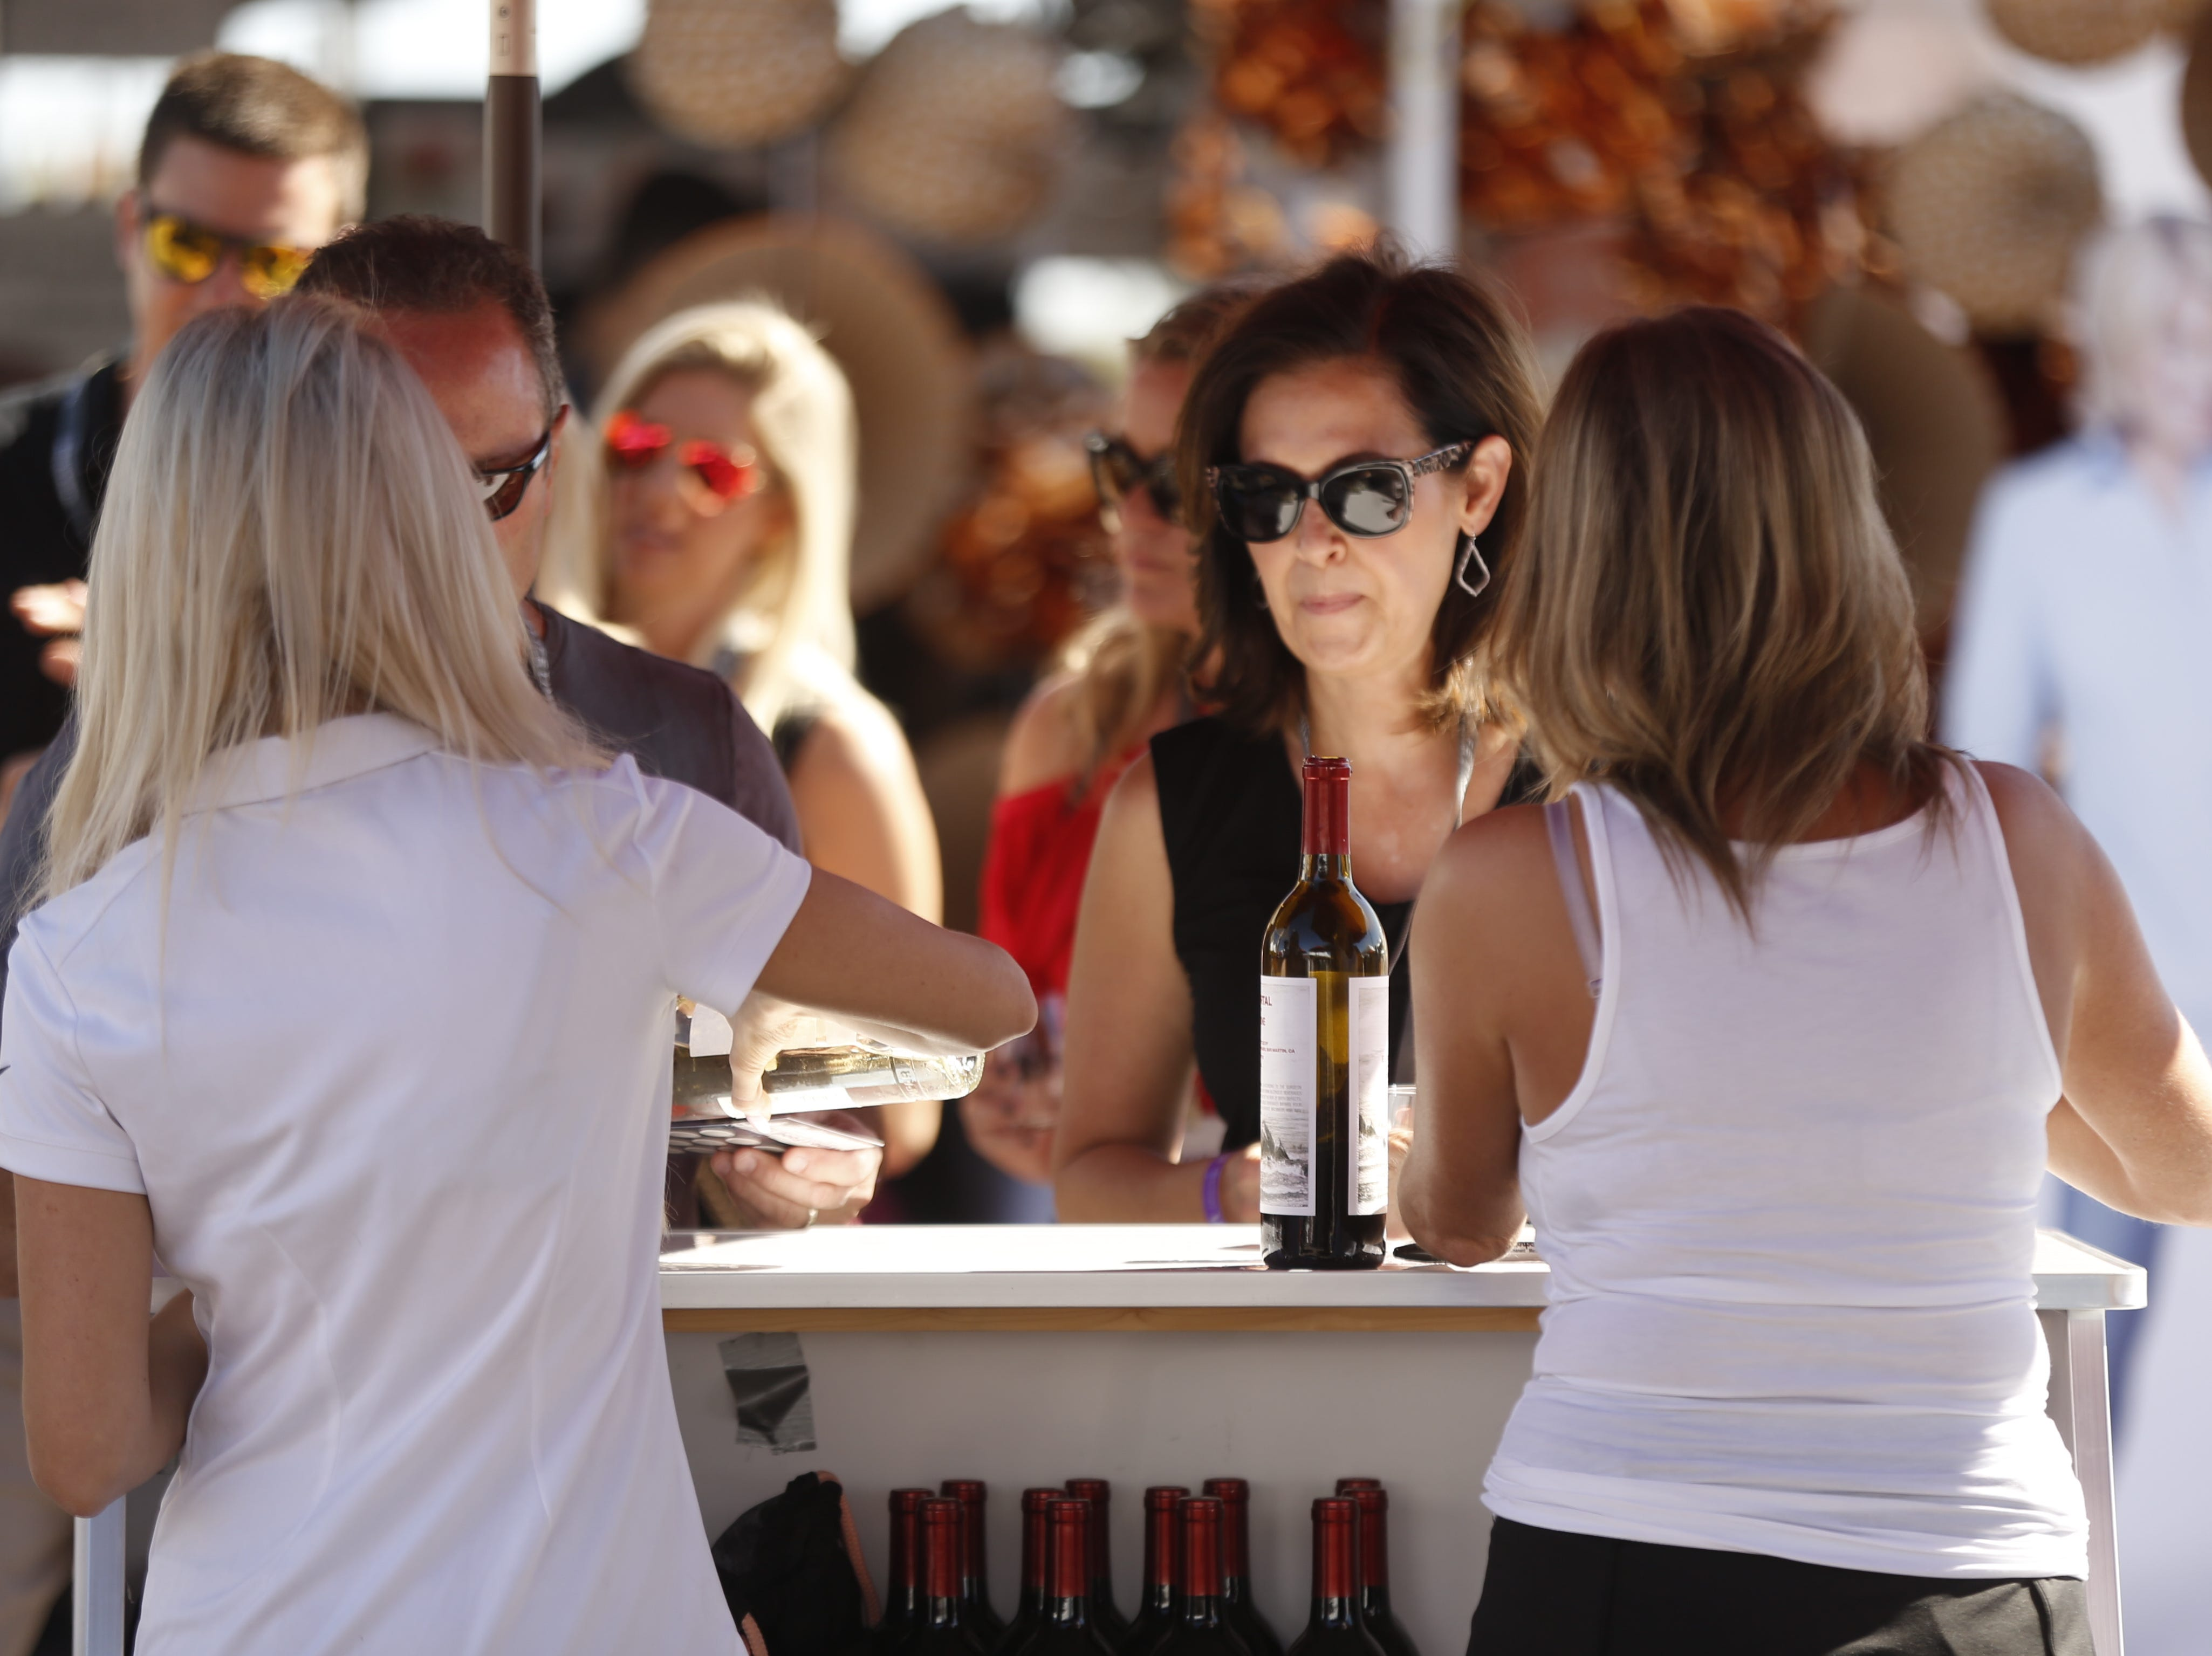 Guests get their first wine pour near the entrance during the azcentral Wine & Food Experience at WestWorld of Scottsdale, Ariz. on Saturday, Nov. 3, 2018.